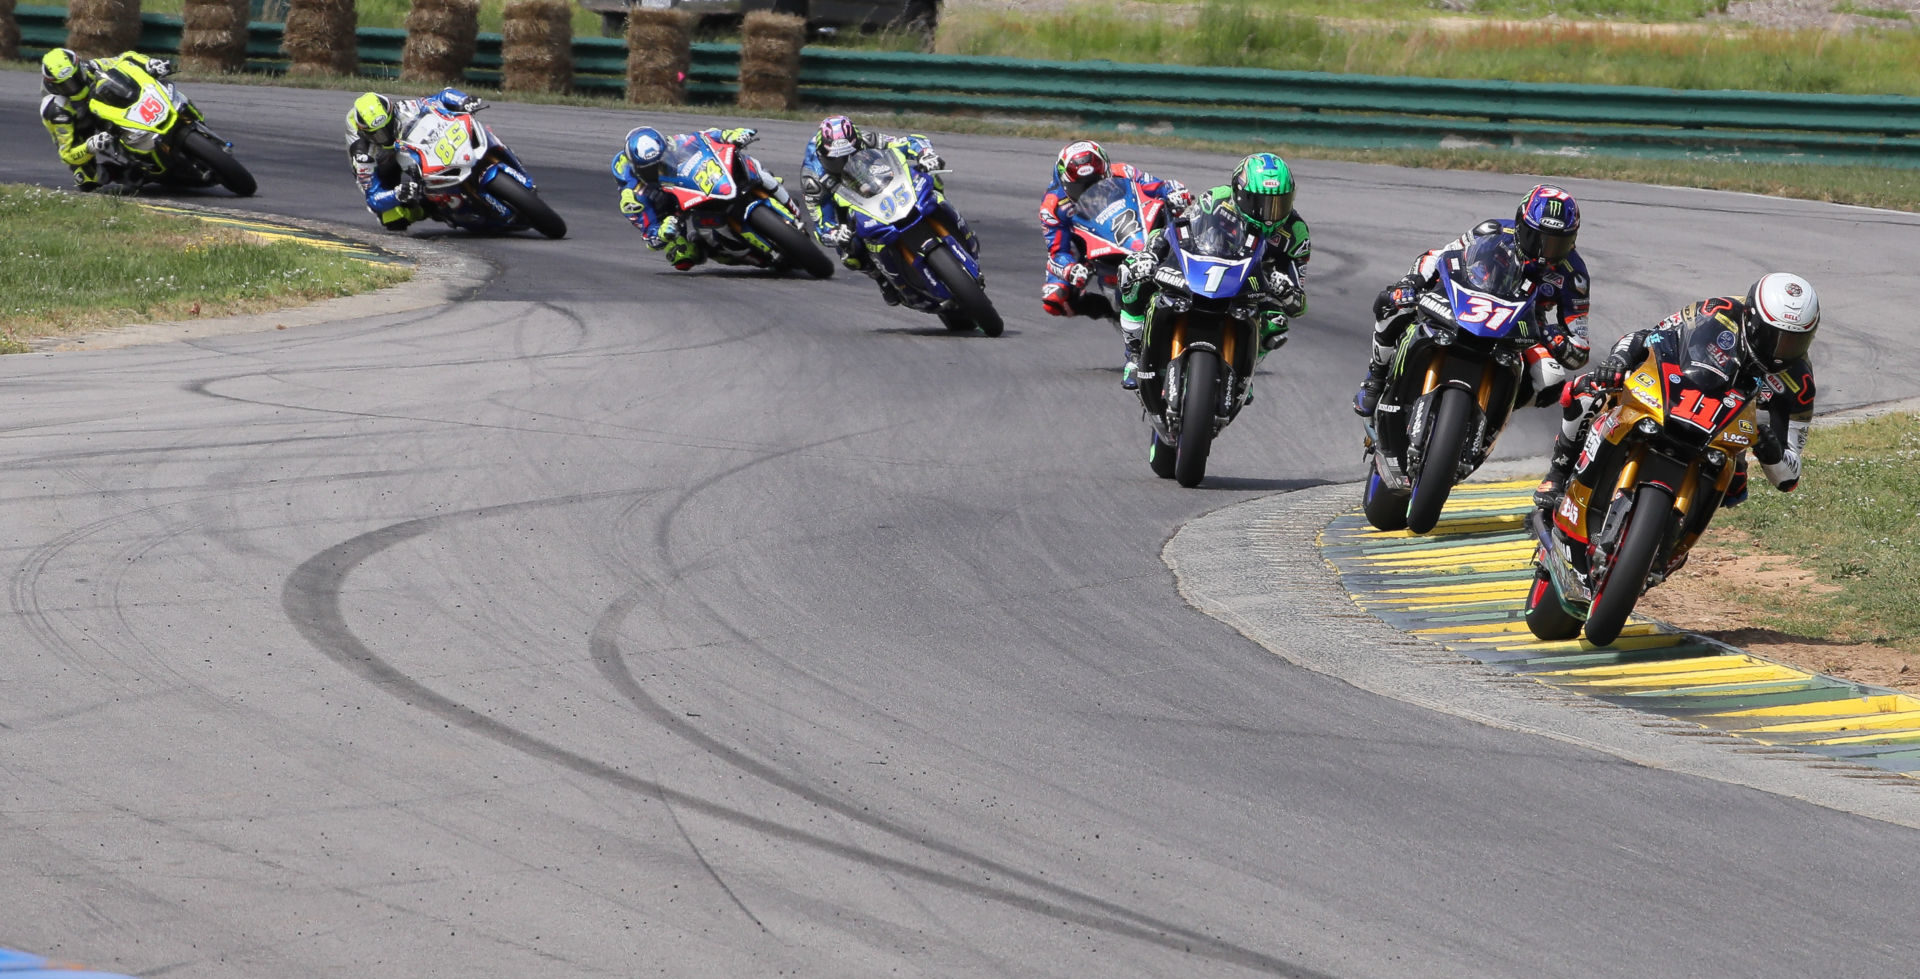 The start of MotoAmerica Superbike Race One at VIR in 2019. Photo by Brian J. Nelson.